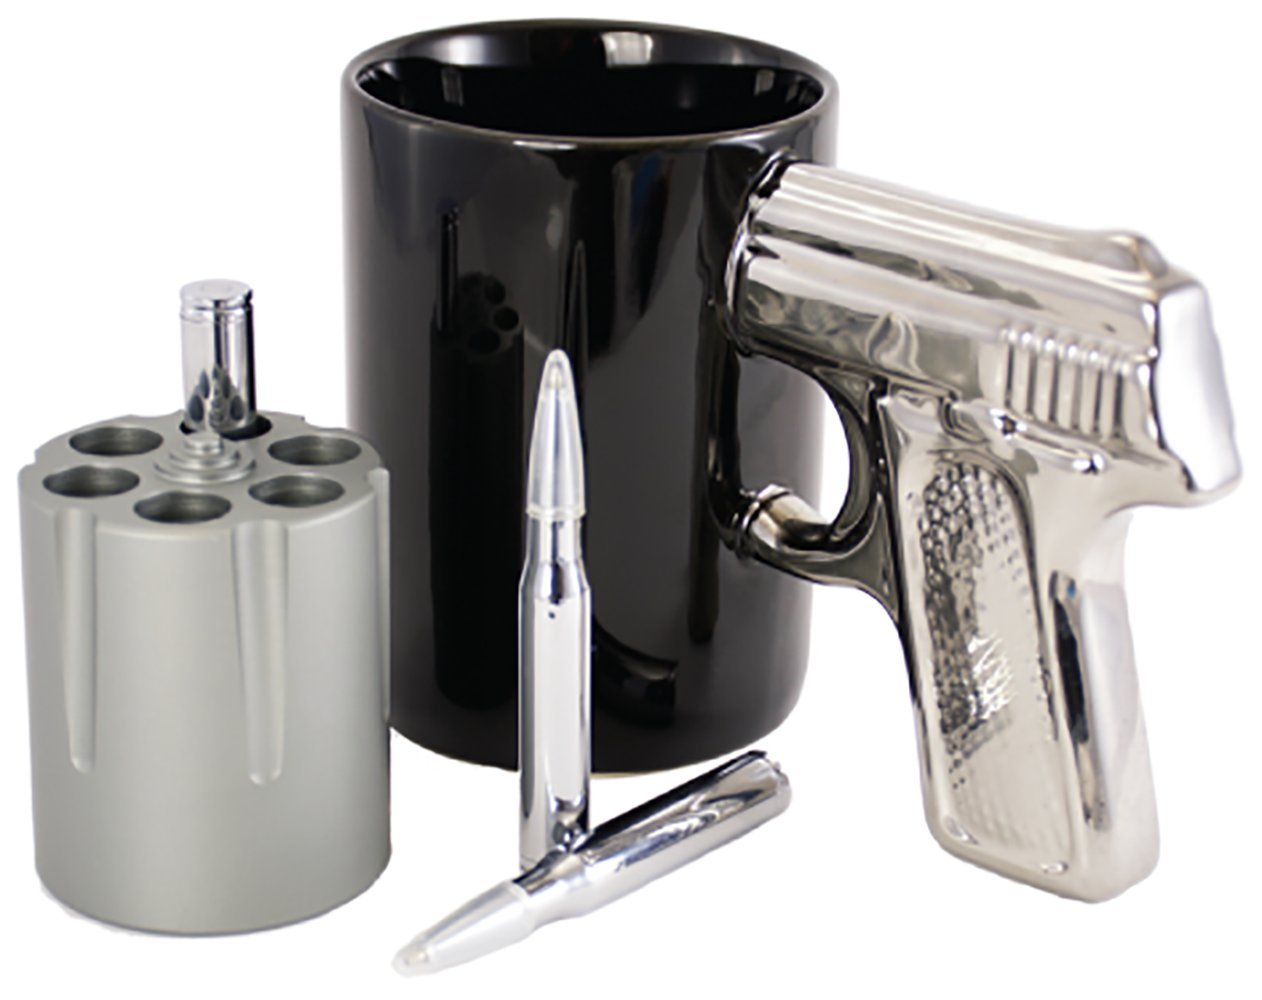 Amazon.com: Revolver Cylinder Pen Holder - Holds Up to 6 Pens - Made ...